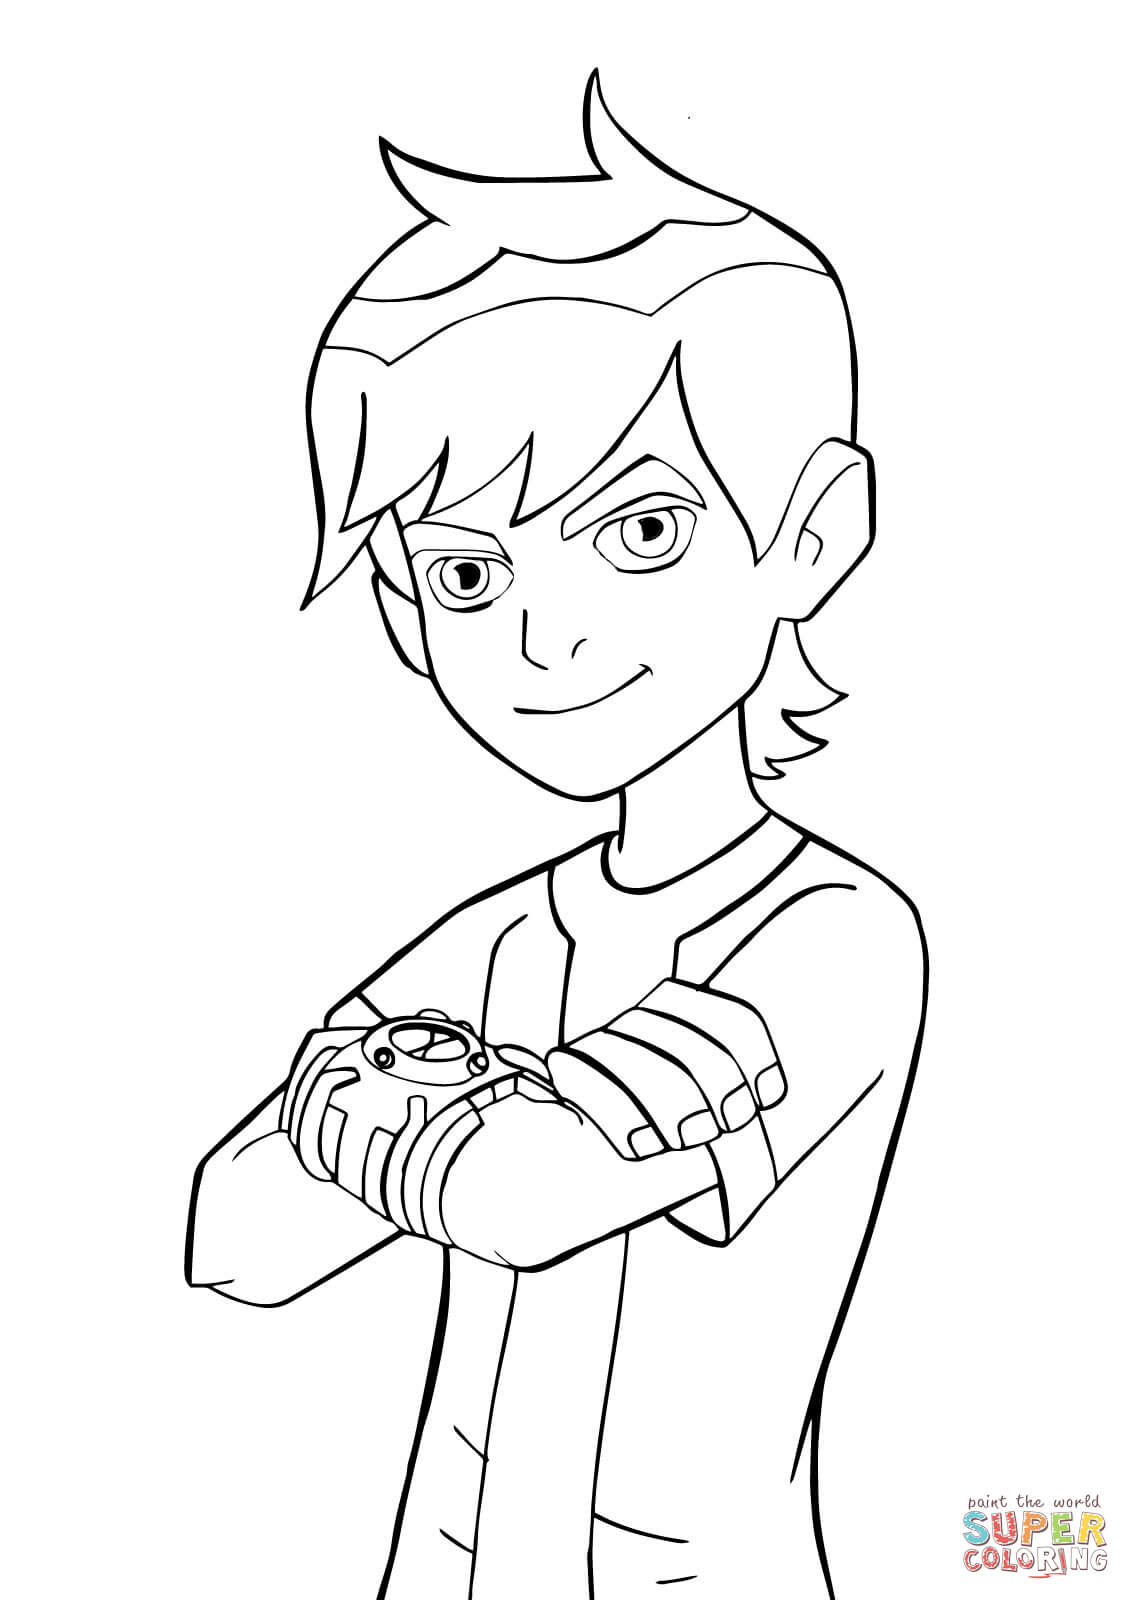 ben 10 coloring pictures ben 10 coloring pages pictures 10 coloring ben